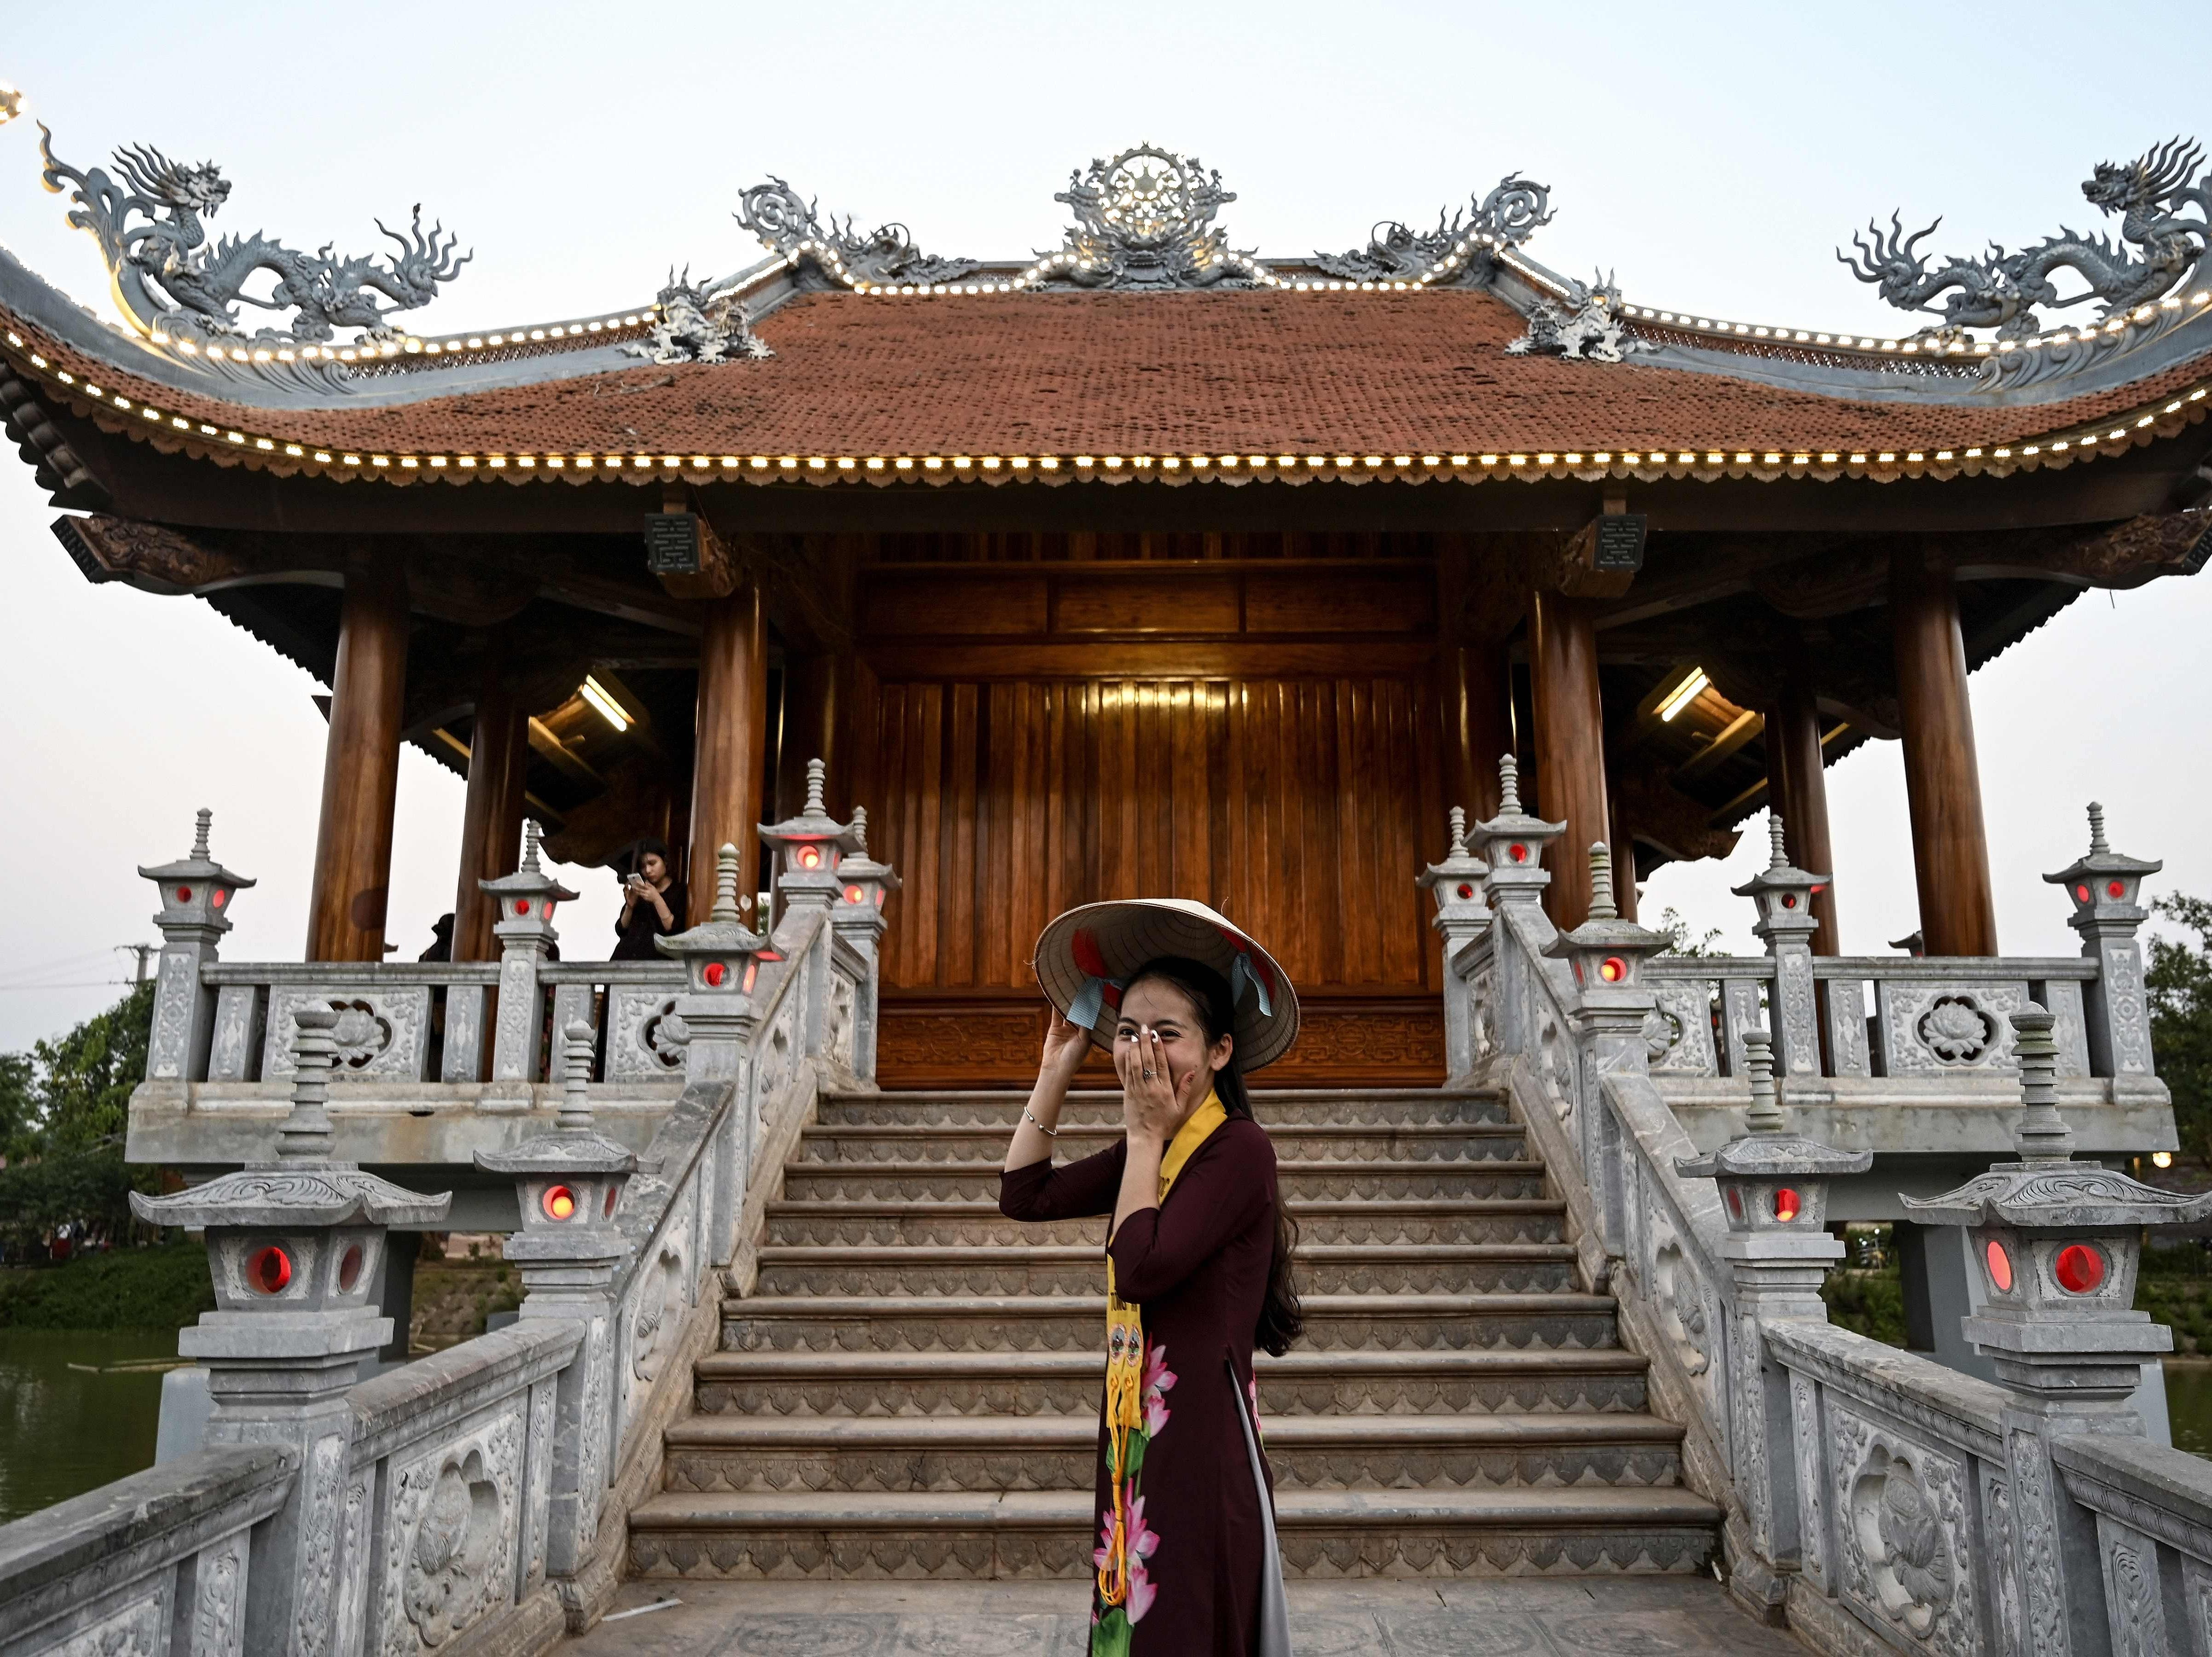 A Vietnamse woman poses for a photographs at the Khai Nguyen pagoda in Son Tay on the outskirts of Hanoi on May 18, 2019, on the eve of the Vesak day or Buddha day festival, marking the birth of Gautama Buddha, his attaining enlightenment, and his passing away. - Buddhists commemorate the birth of Buddha, his attaining enlightenment and death on the day of the full moon, which falls on May 18 this year.